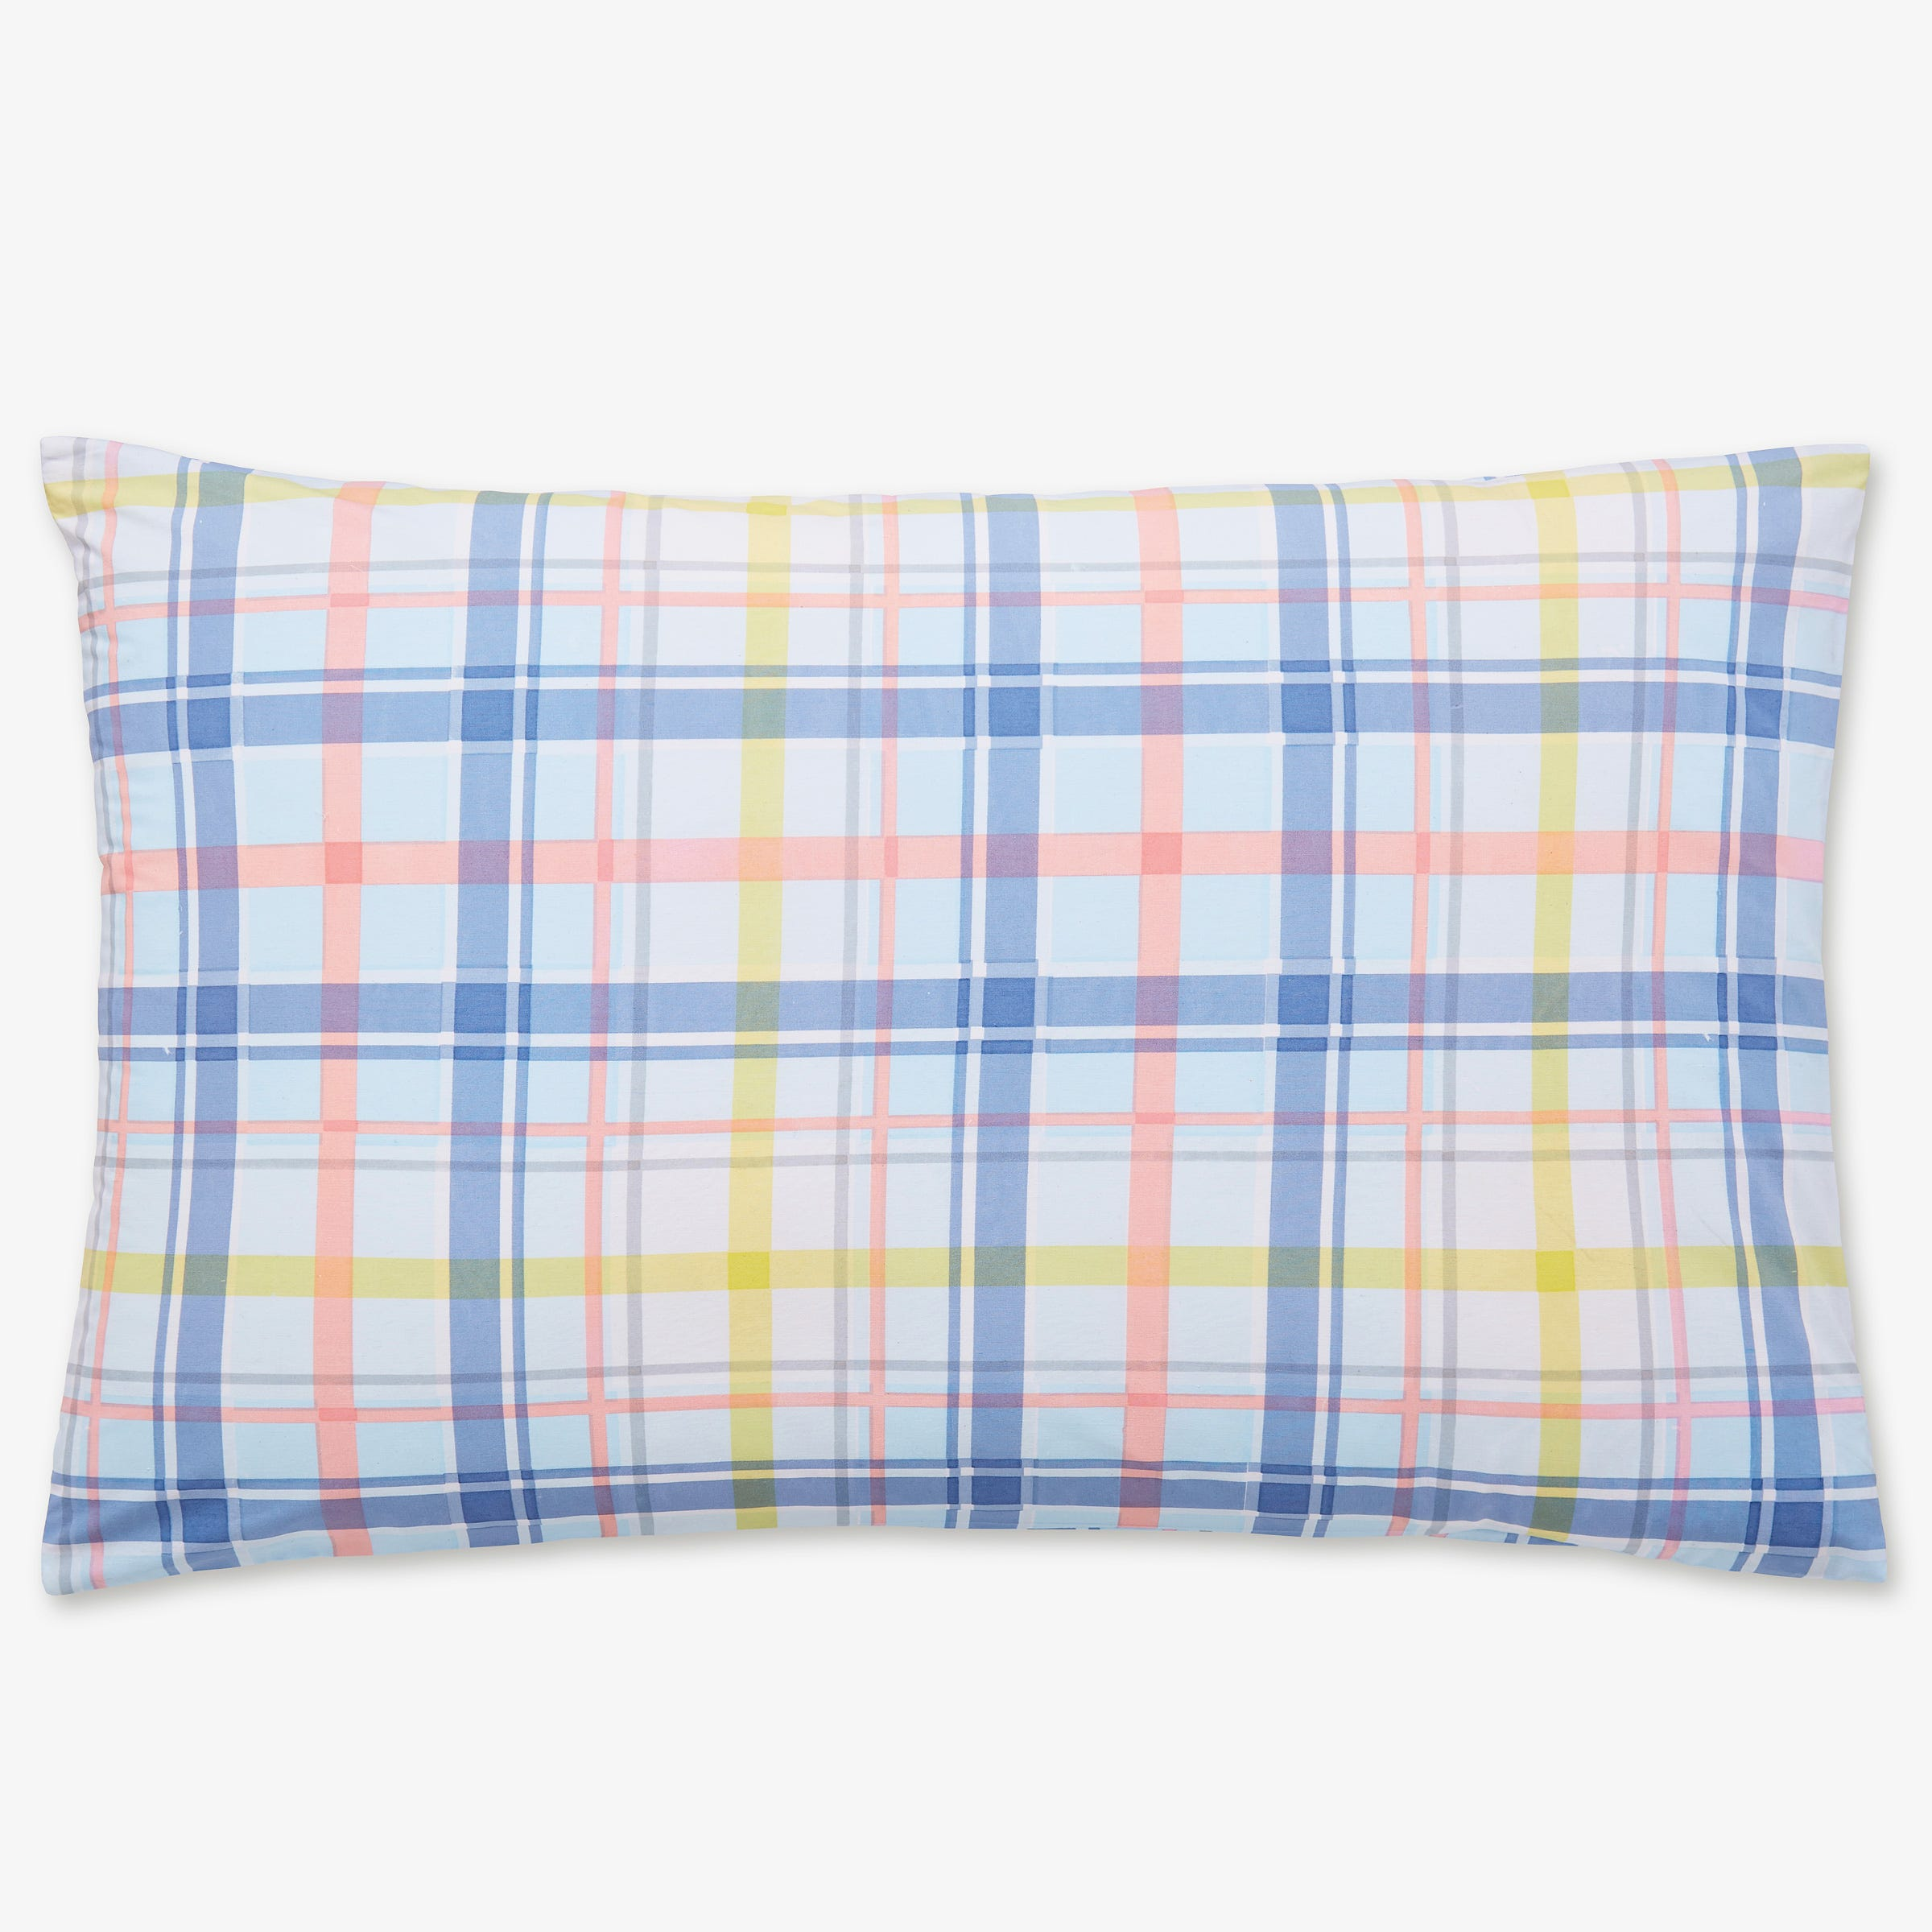 Joules - Whitstable Floral Check Pillowcase